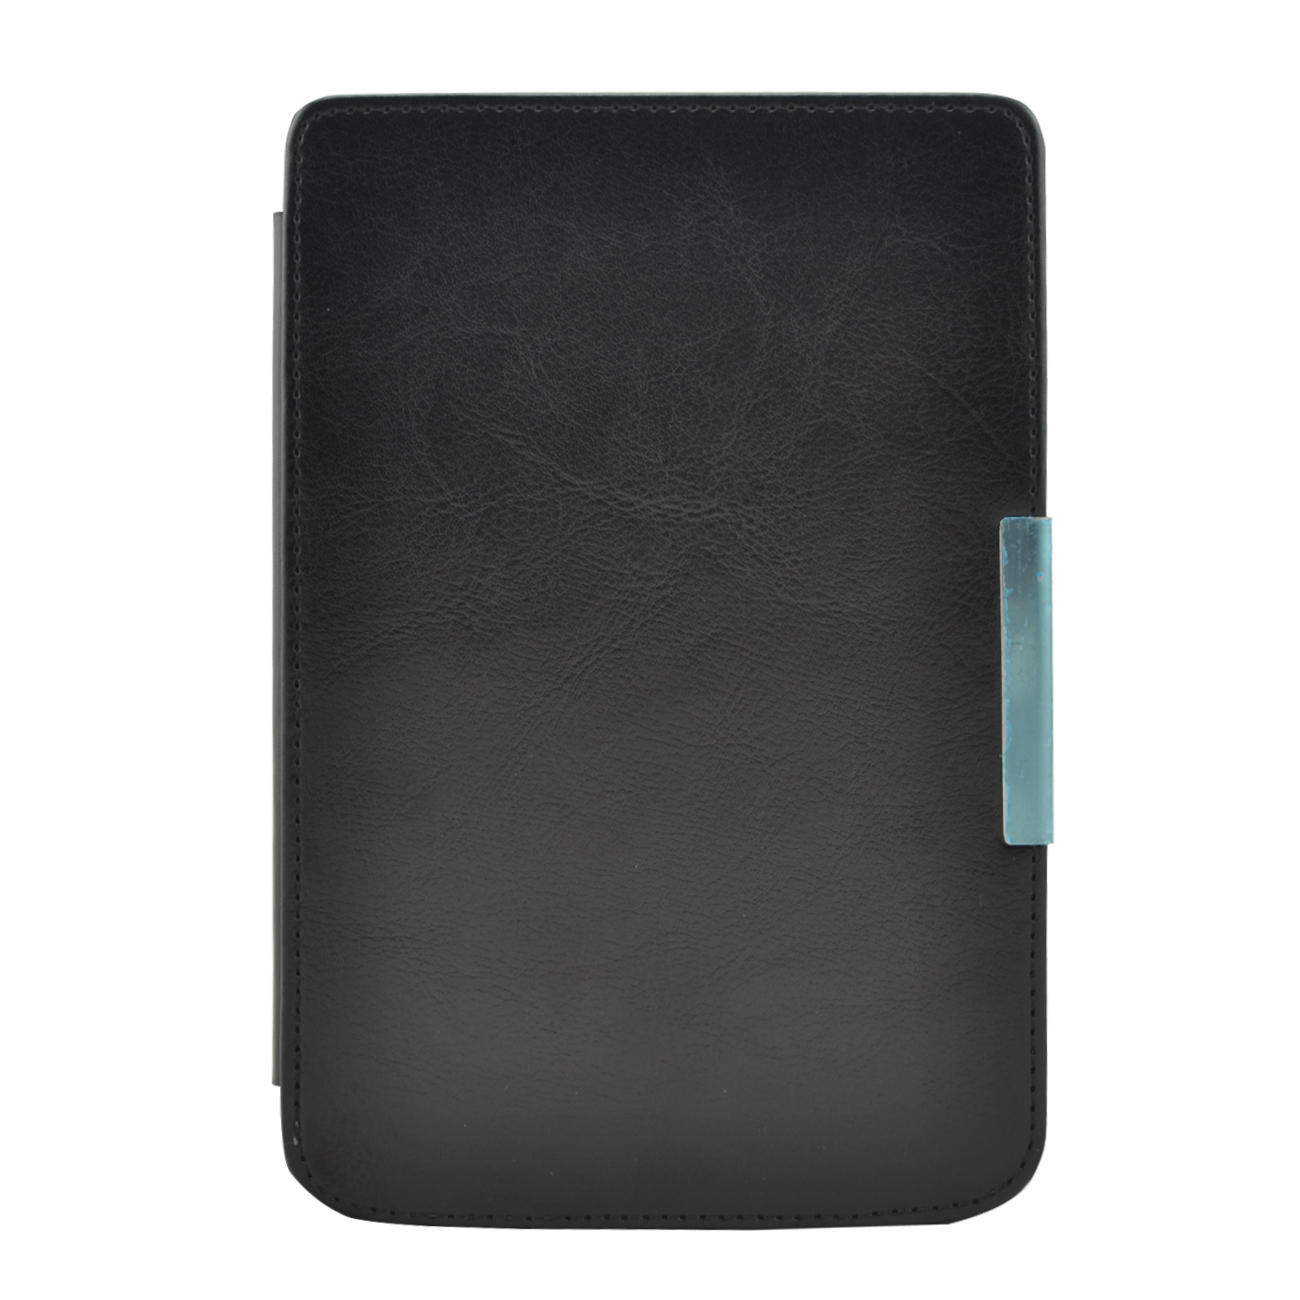 PU Leather Case Cover funda for Pocketbook touch 614/624 ...